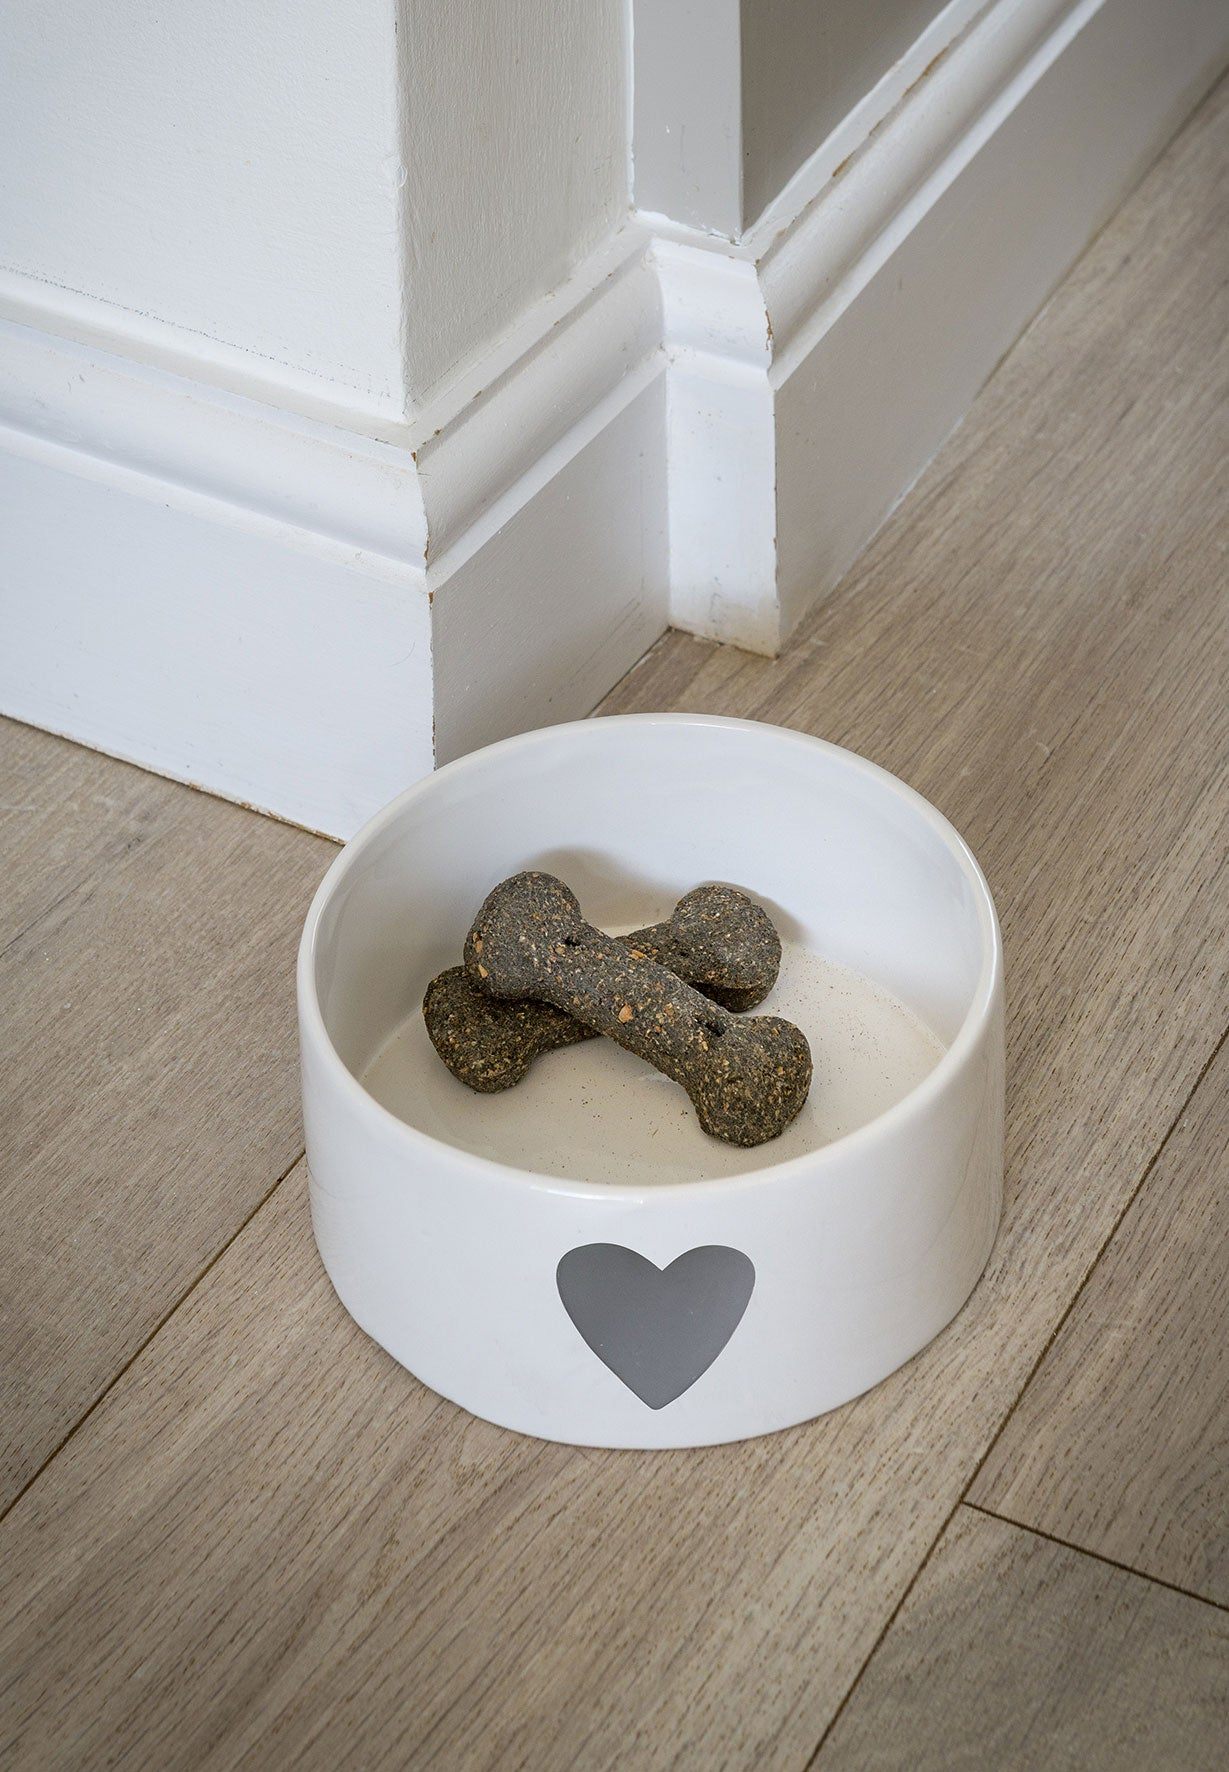 White ceramic bowl with grey heart